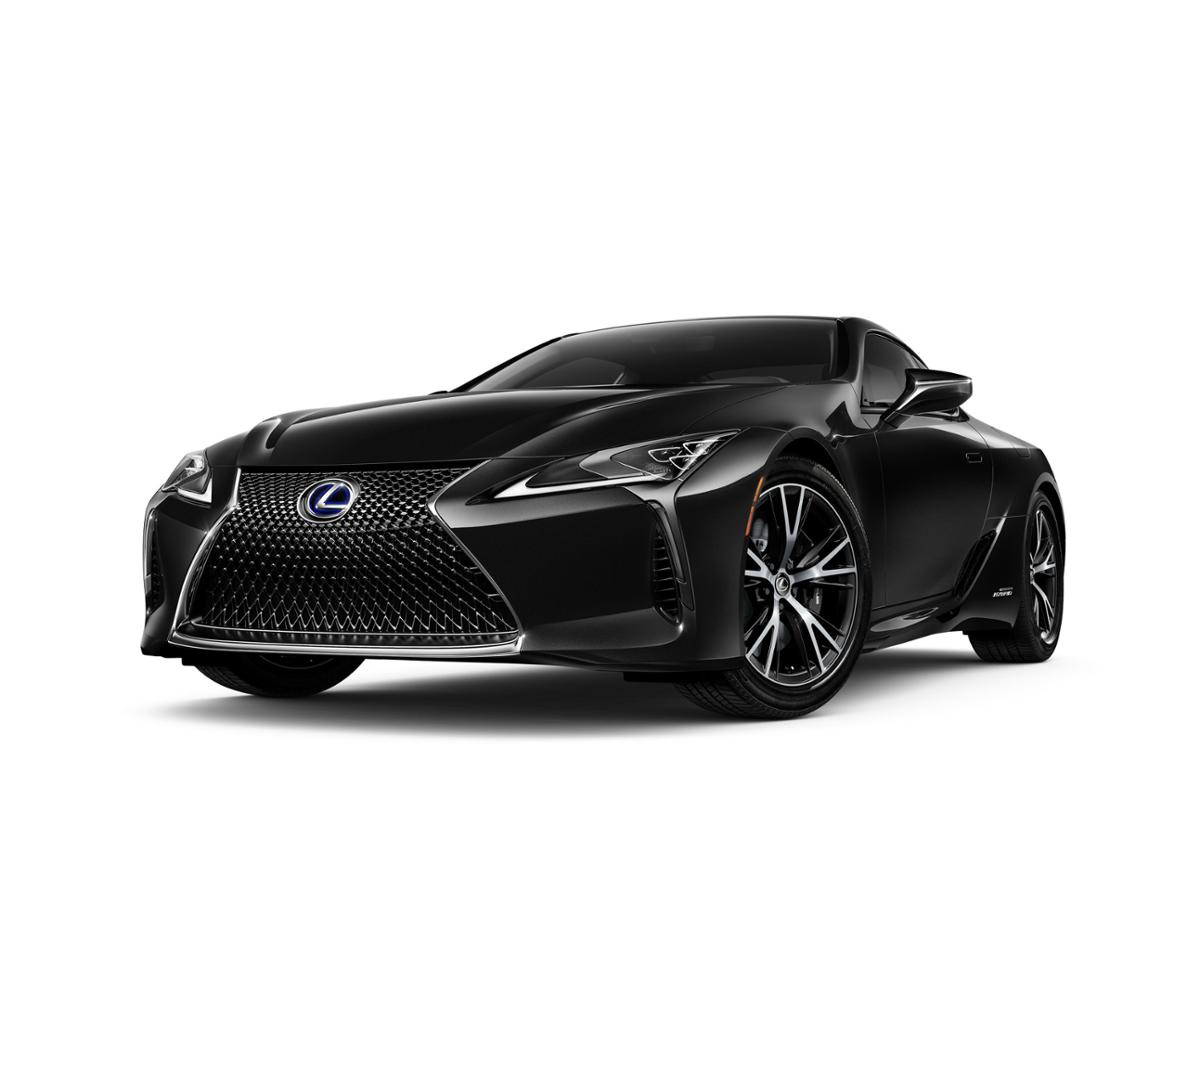 Lexus Dealerships In Ct: Towson Caviar 2018 Lexus LC 500h: New Car For Sale -Y21492